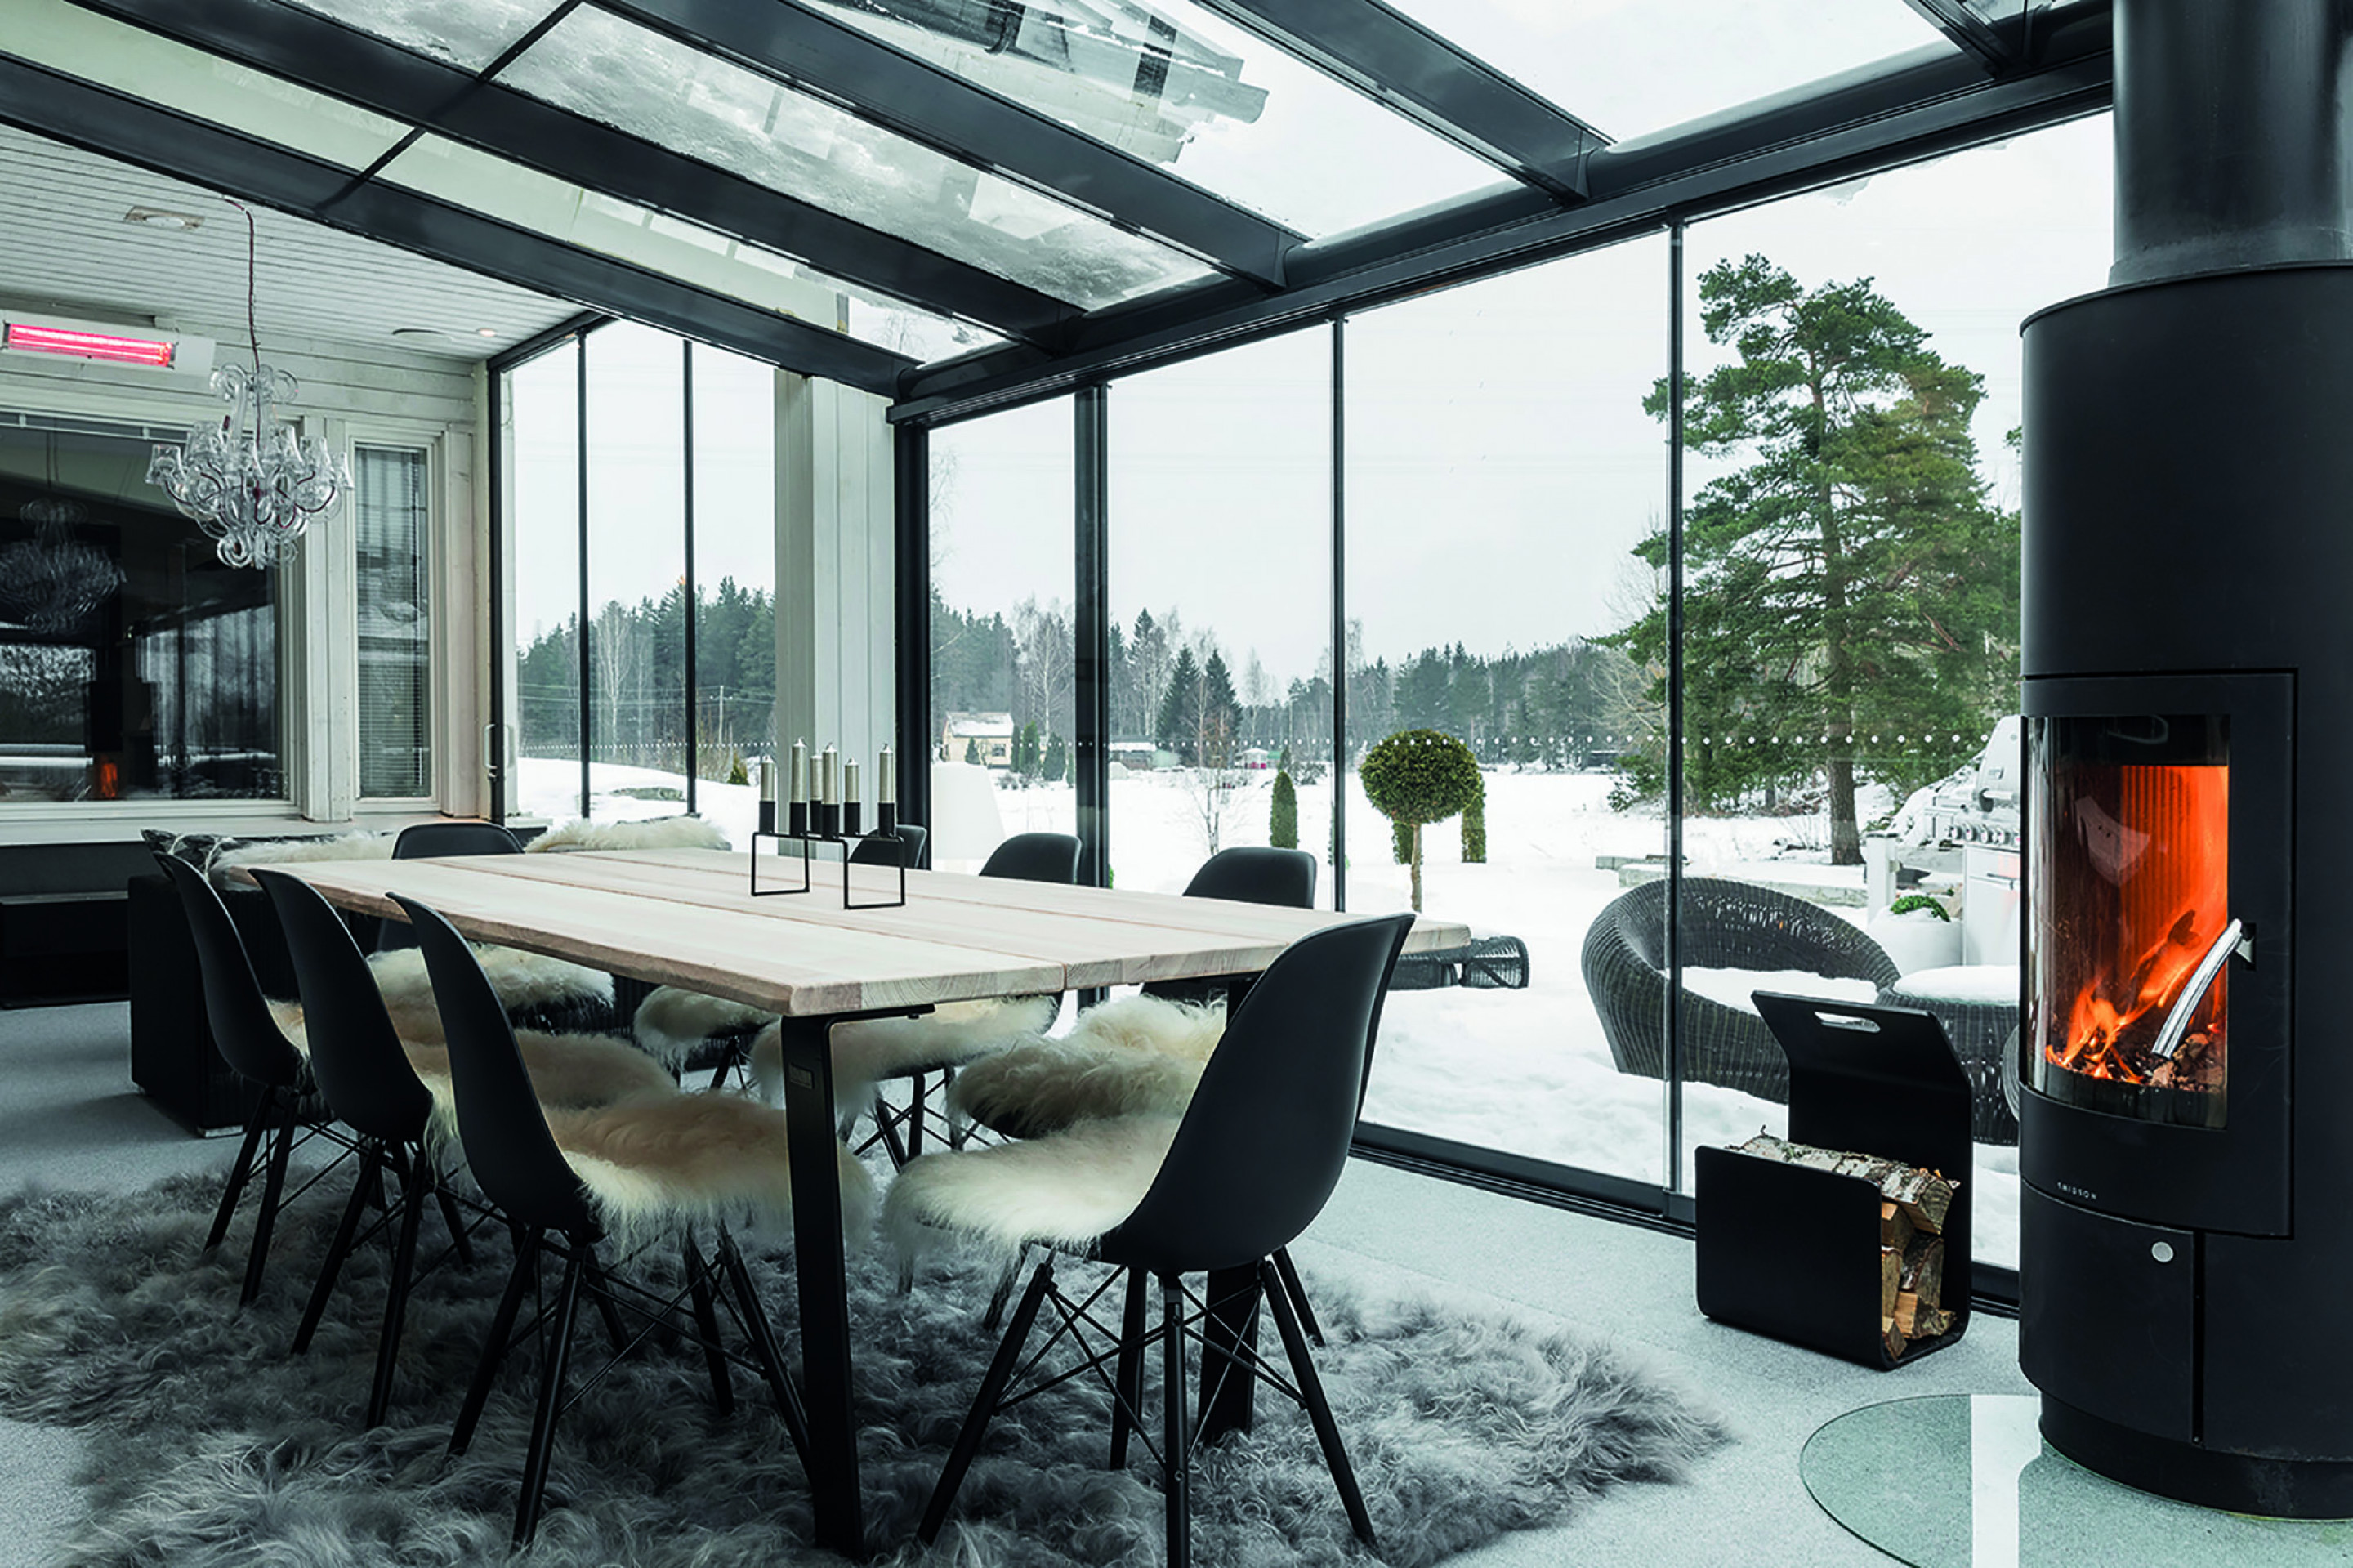 Lumon retractable glass sunroom in winter, glass sunroom winter, winter sunroom